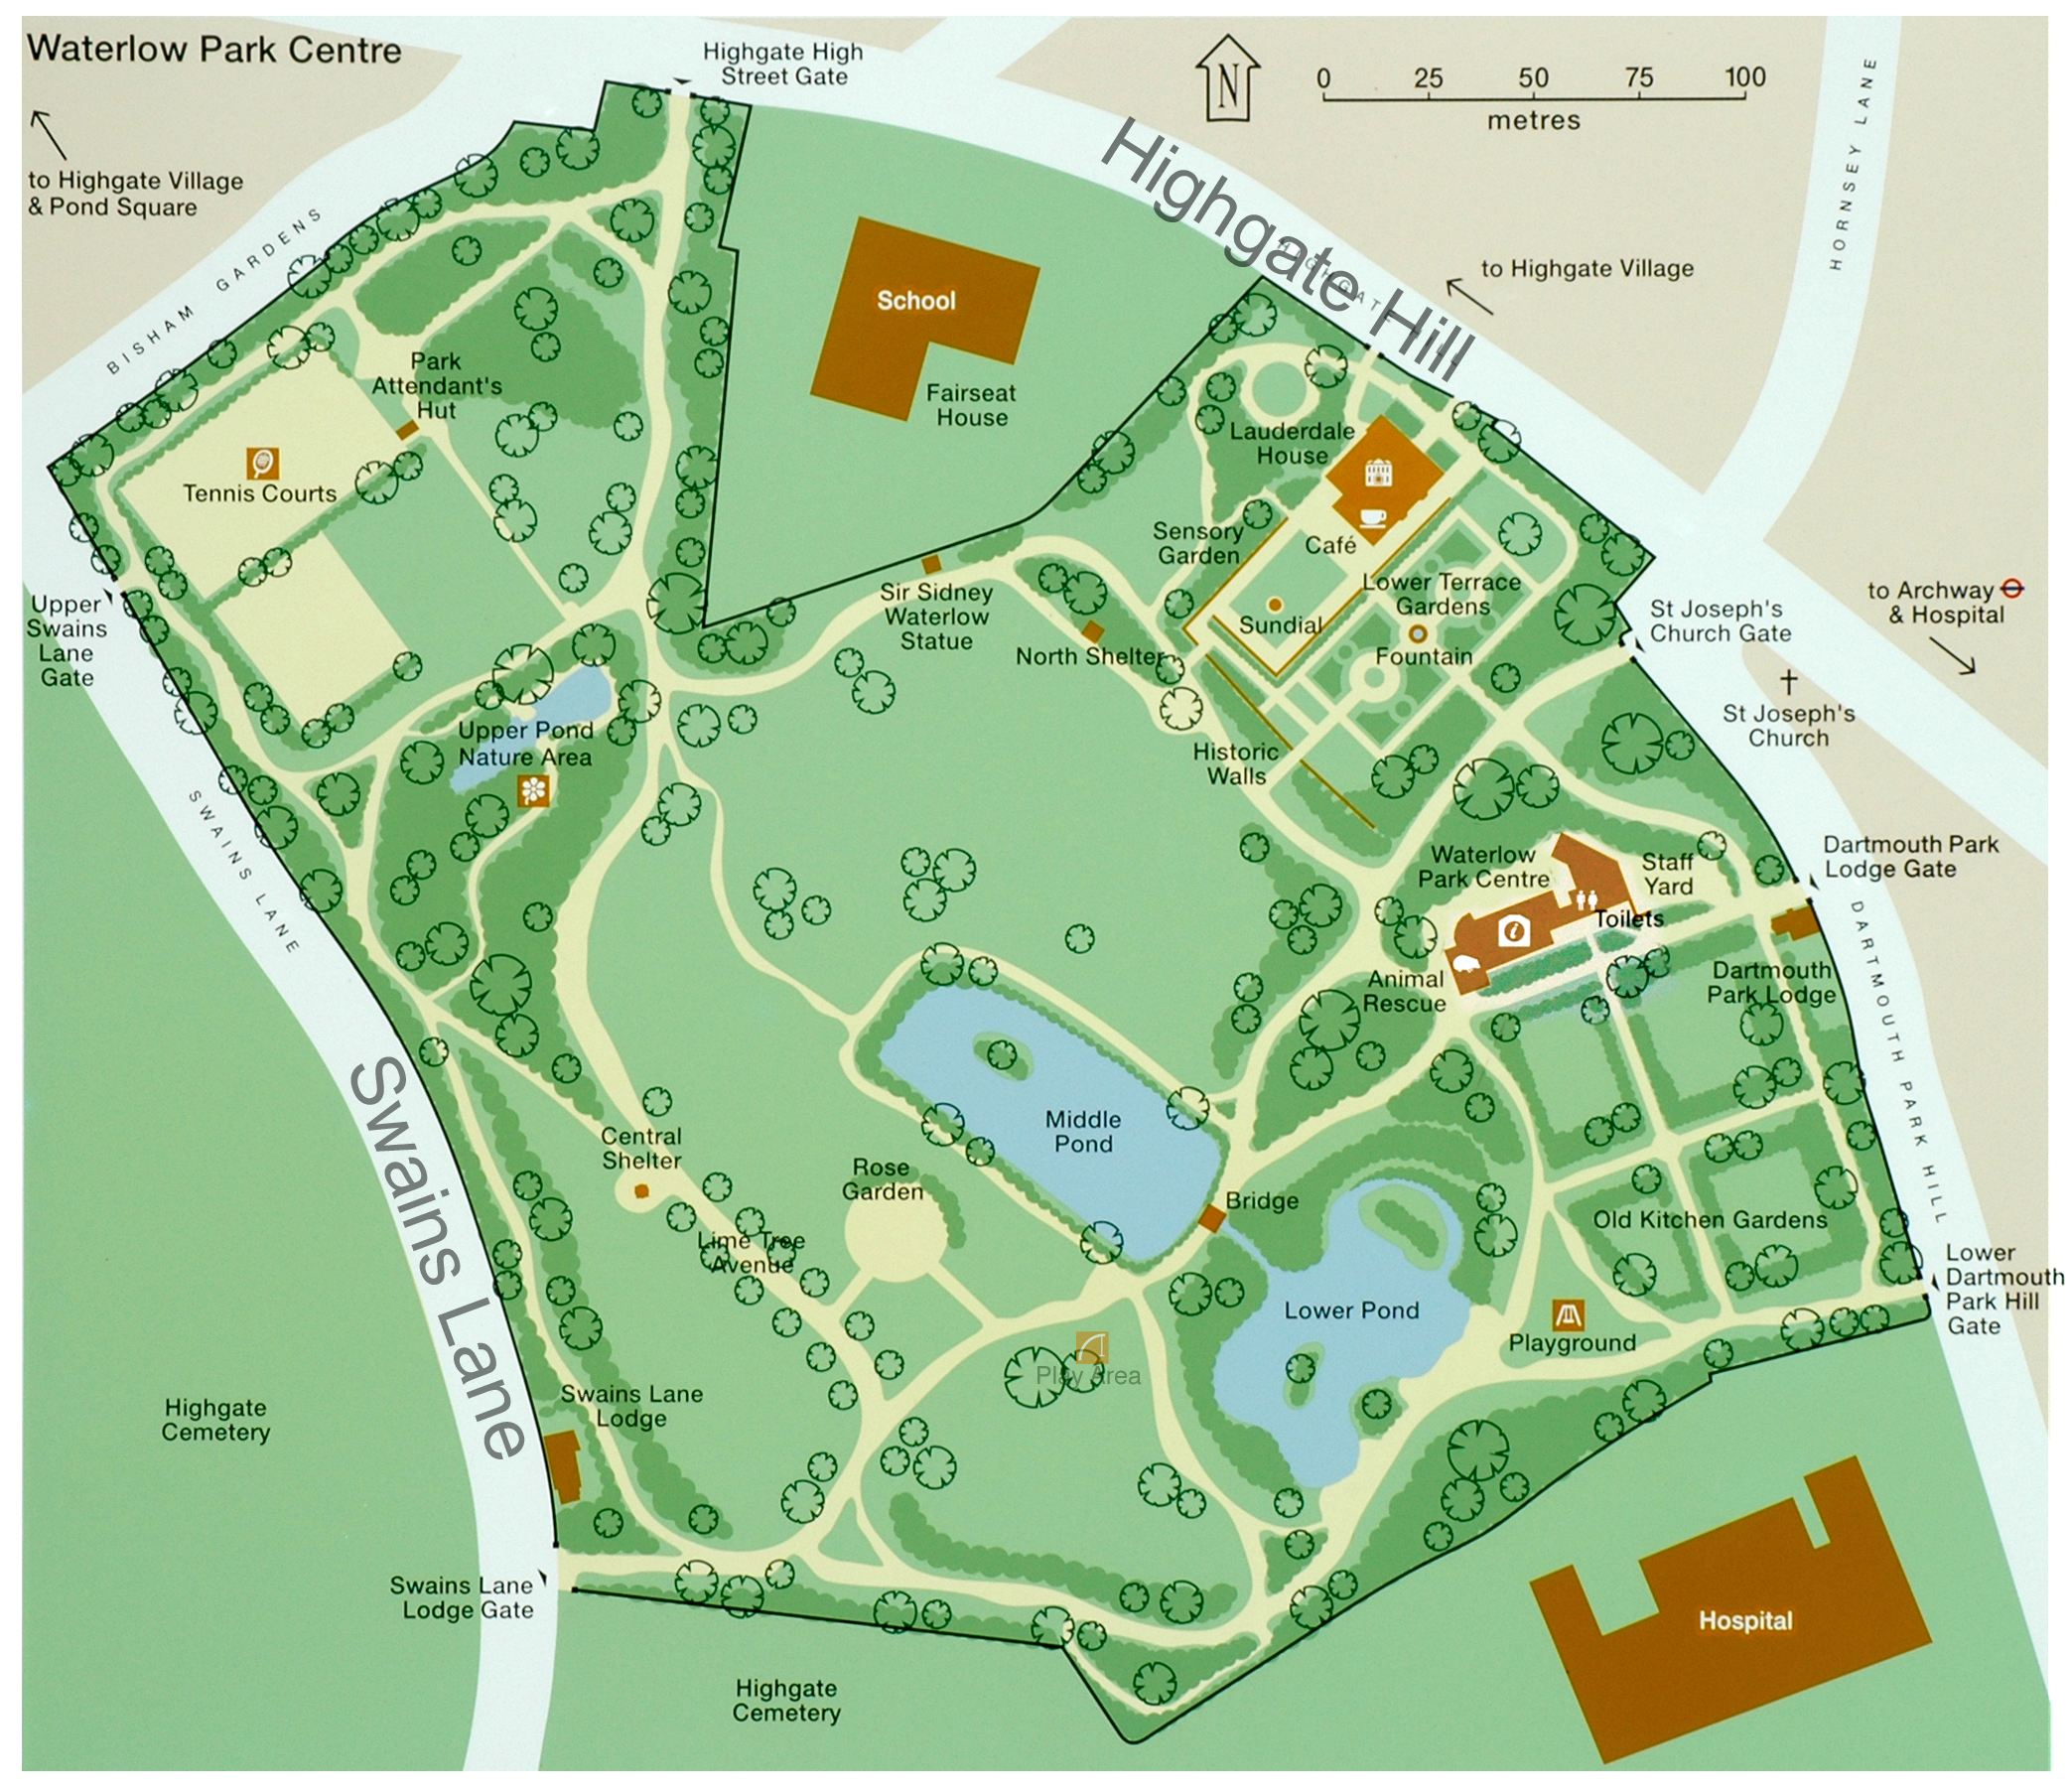 Waterlow Park Map And Facilities